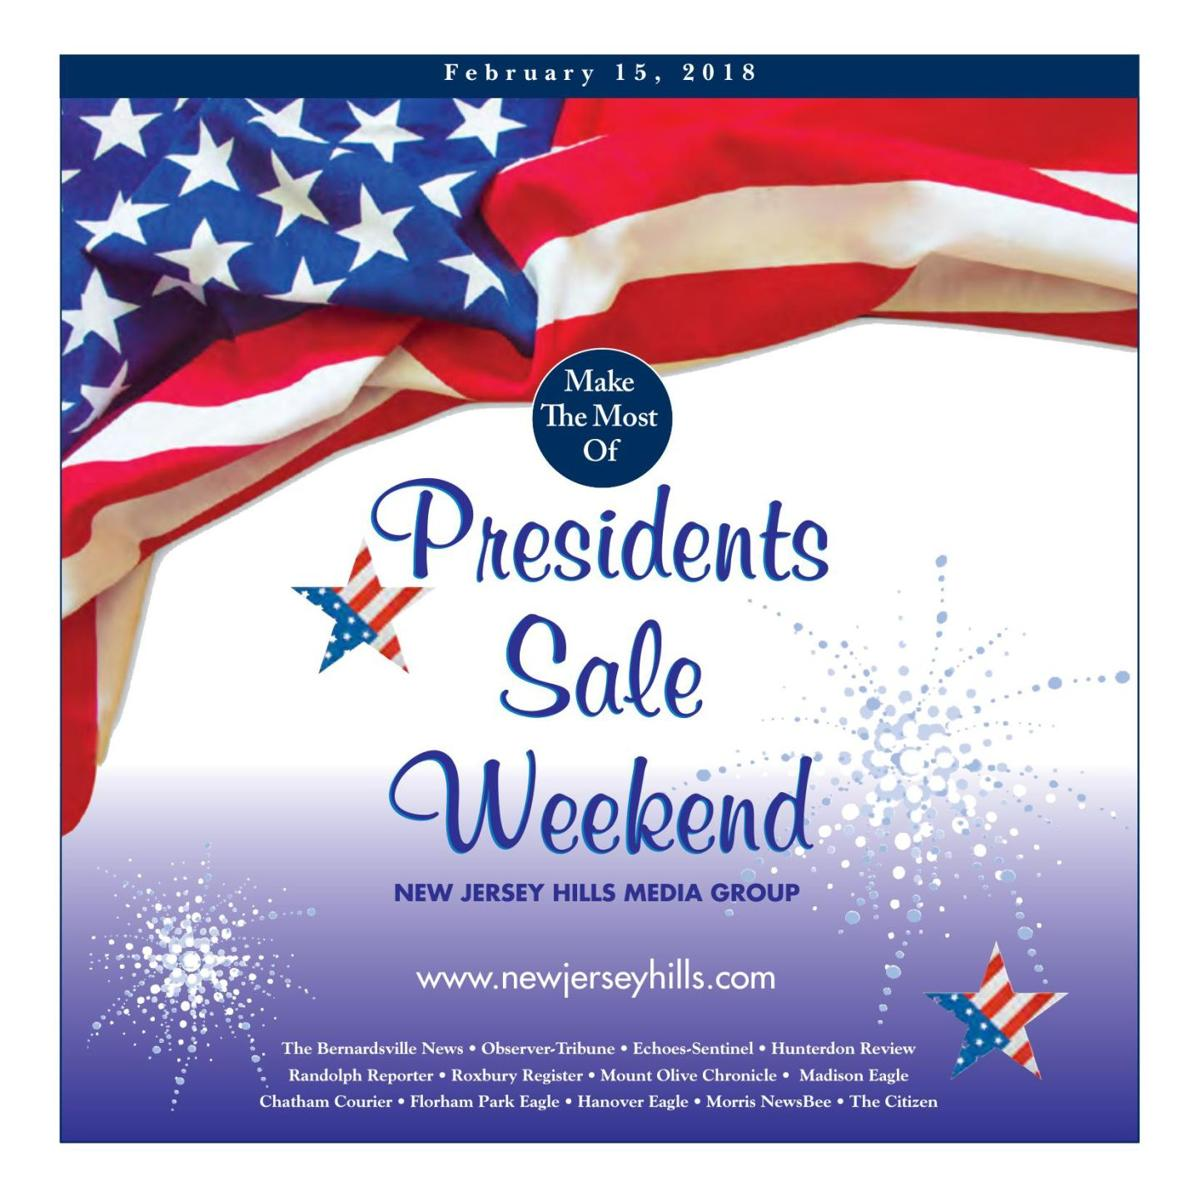 Presidents Sale Weekend - February 15, 2018